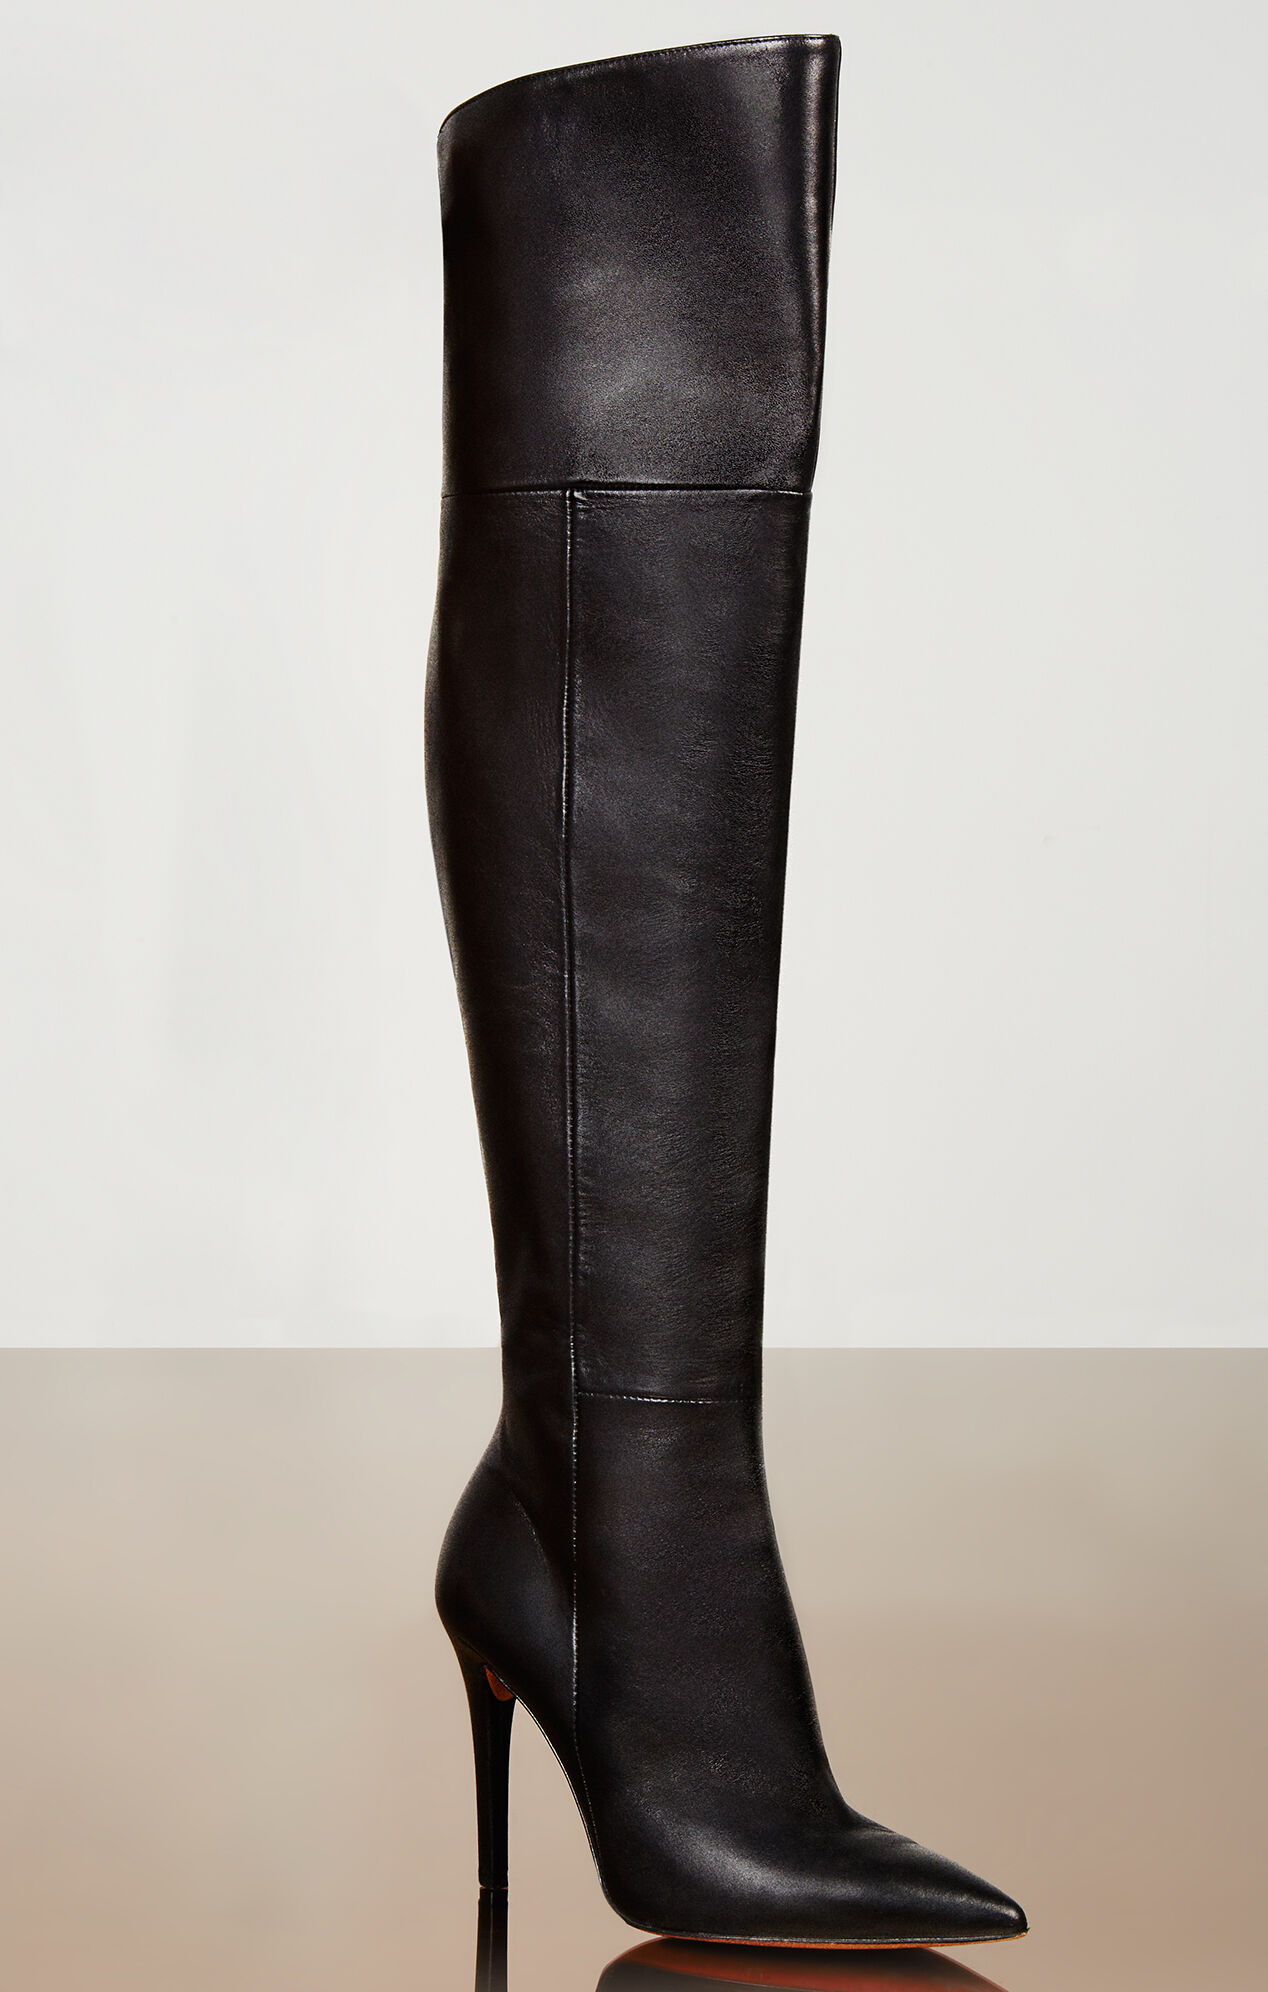 Thigh High Boots. From over the knees that are everywhere right now to shiny patent pairs and statement styles, thigh high boots are an essential addition to your new season wardrobe.